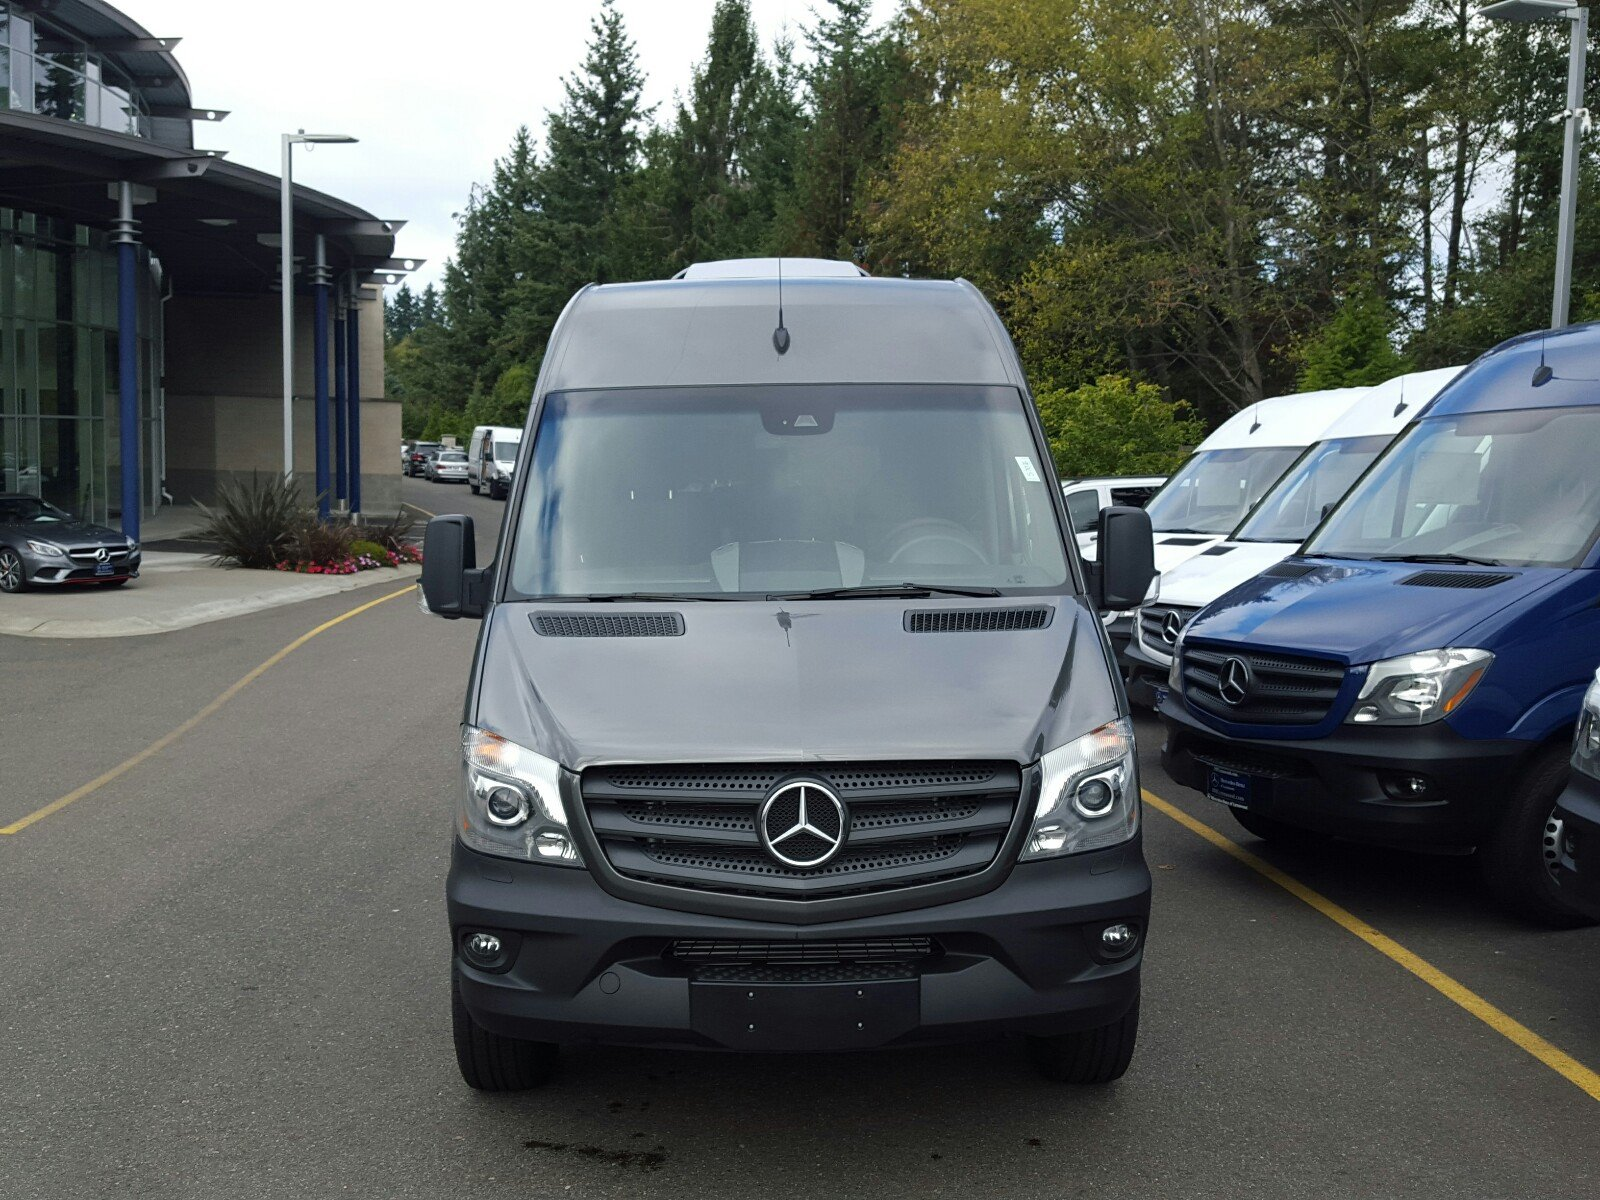 new 2017 mercedes benz sprinter sprinter passenger van passenger van in lynnwood s7076. Black Bedroom Furniture Sets. Home Design Ideas